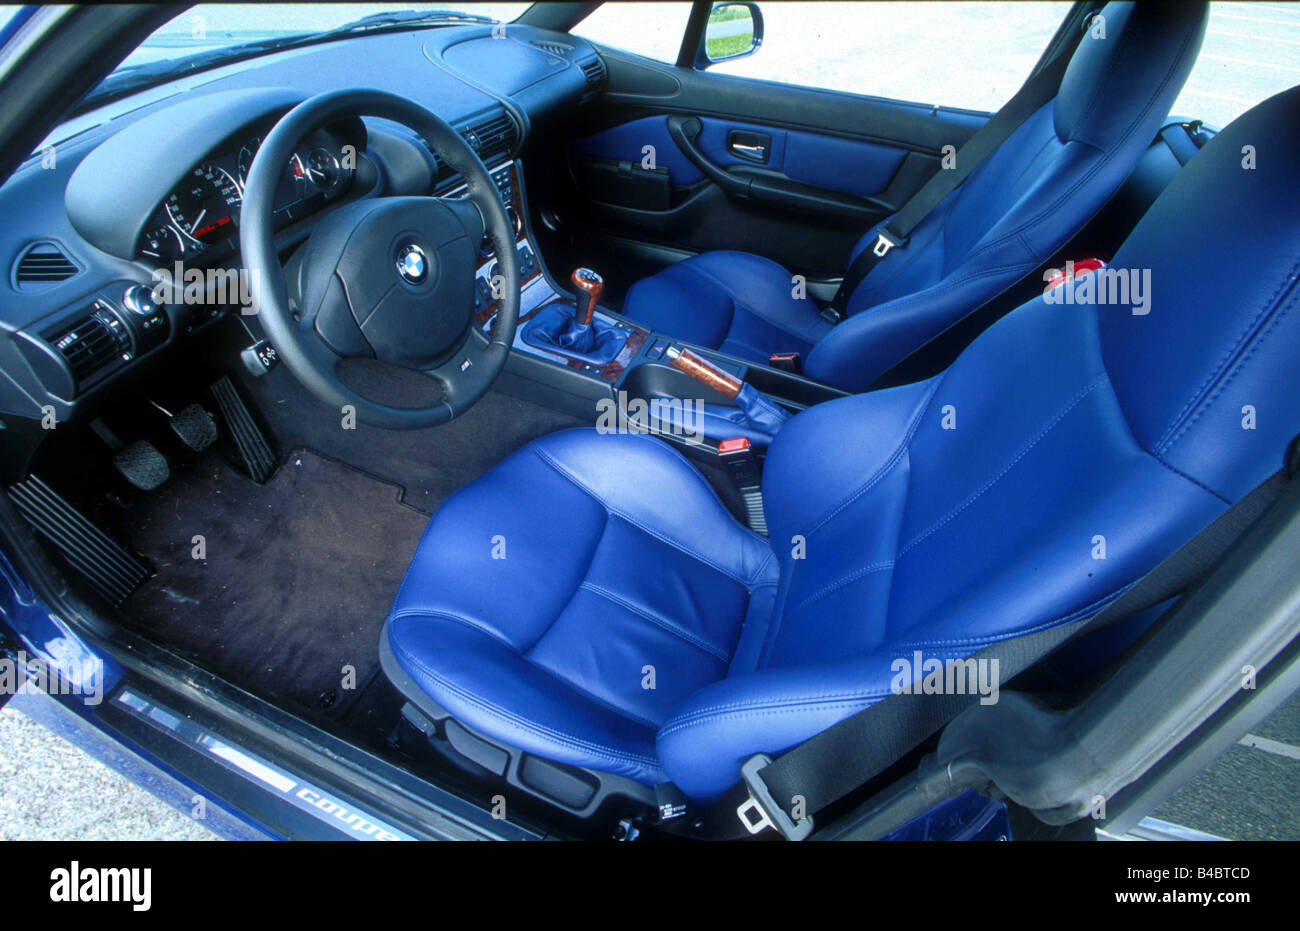 hight resolution of car bmw z3 coupe roadster model year 2002 interior view